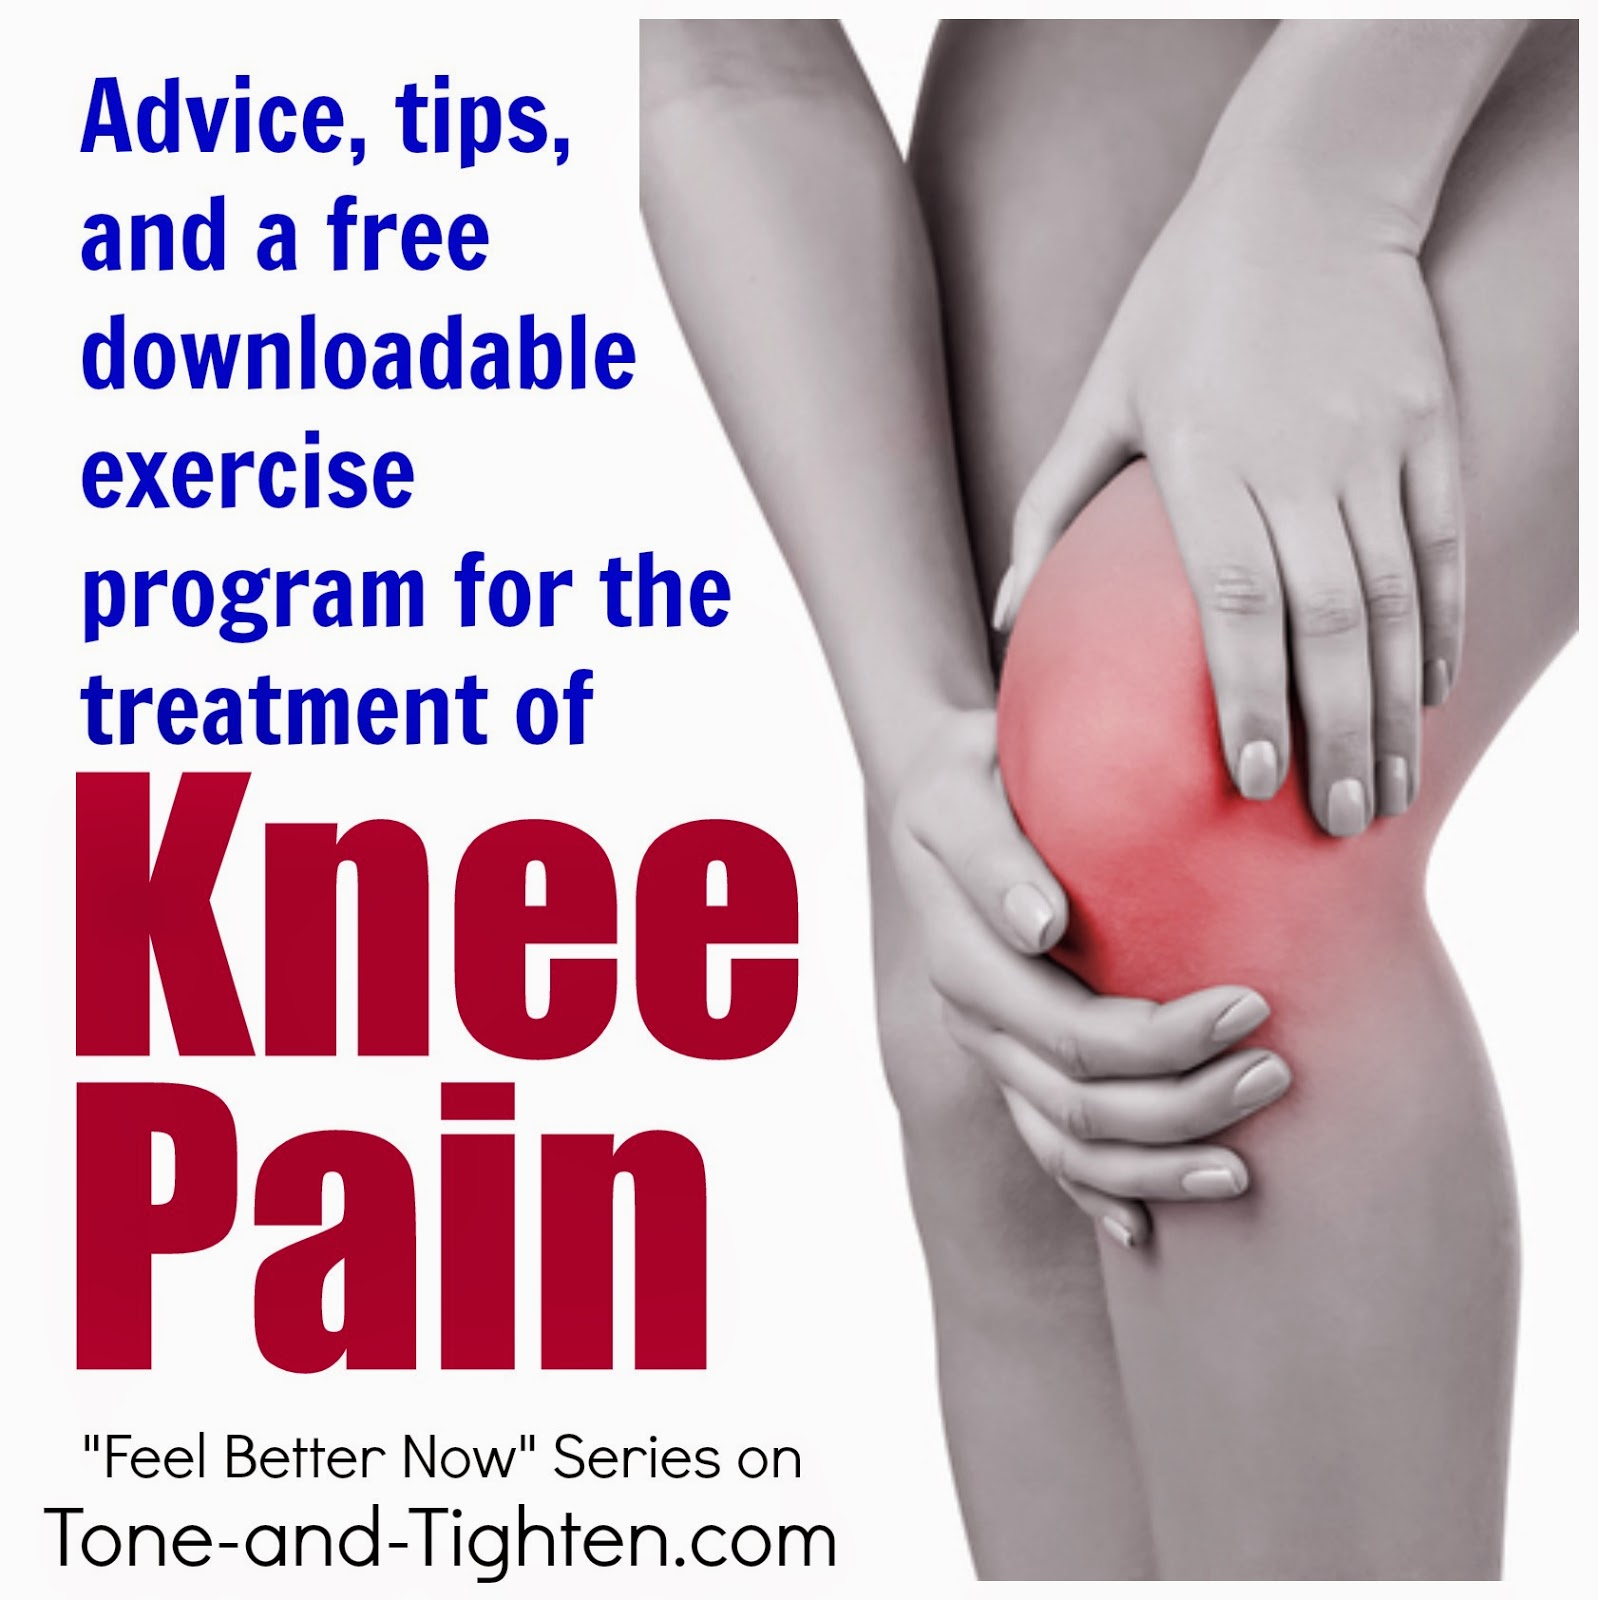 https://tone-and-tighten.com/2014/03/feel-better-now-series-how-to-treat-knee-pain-free-download.html